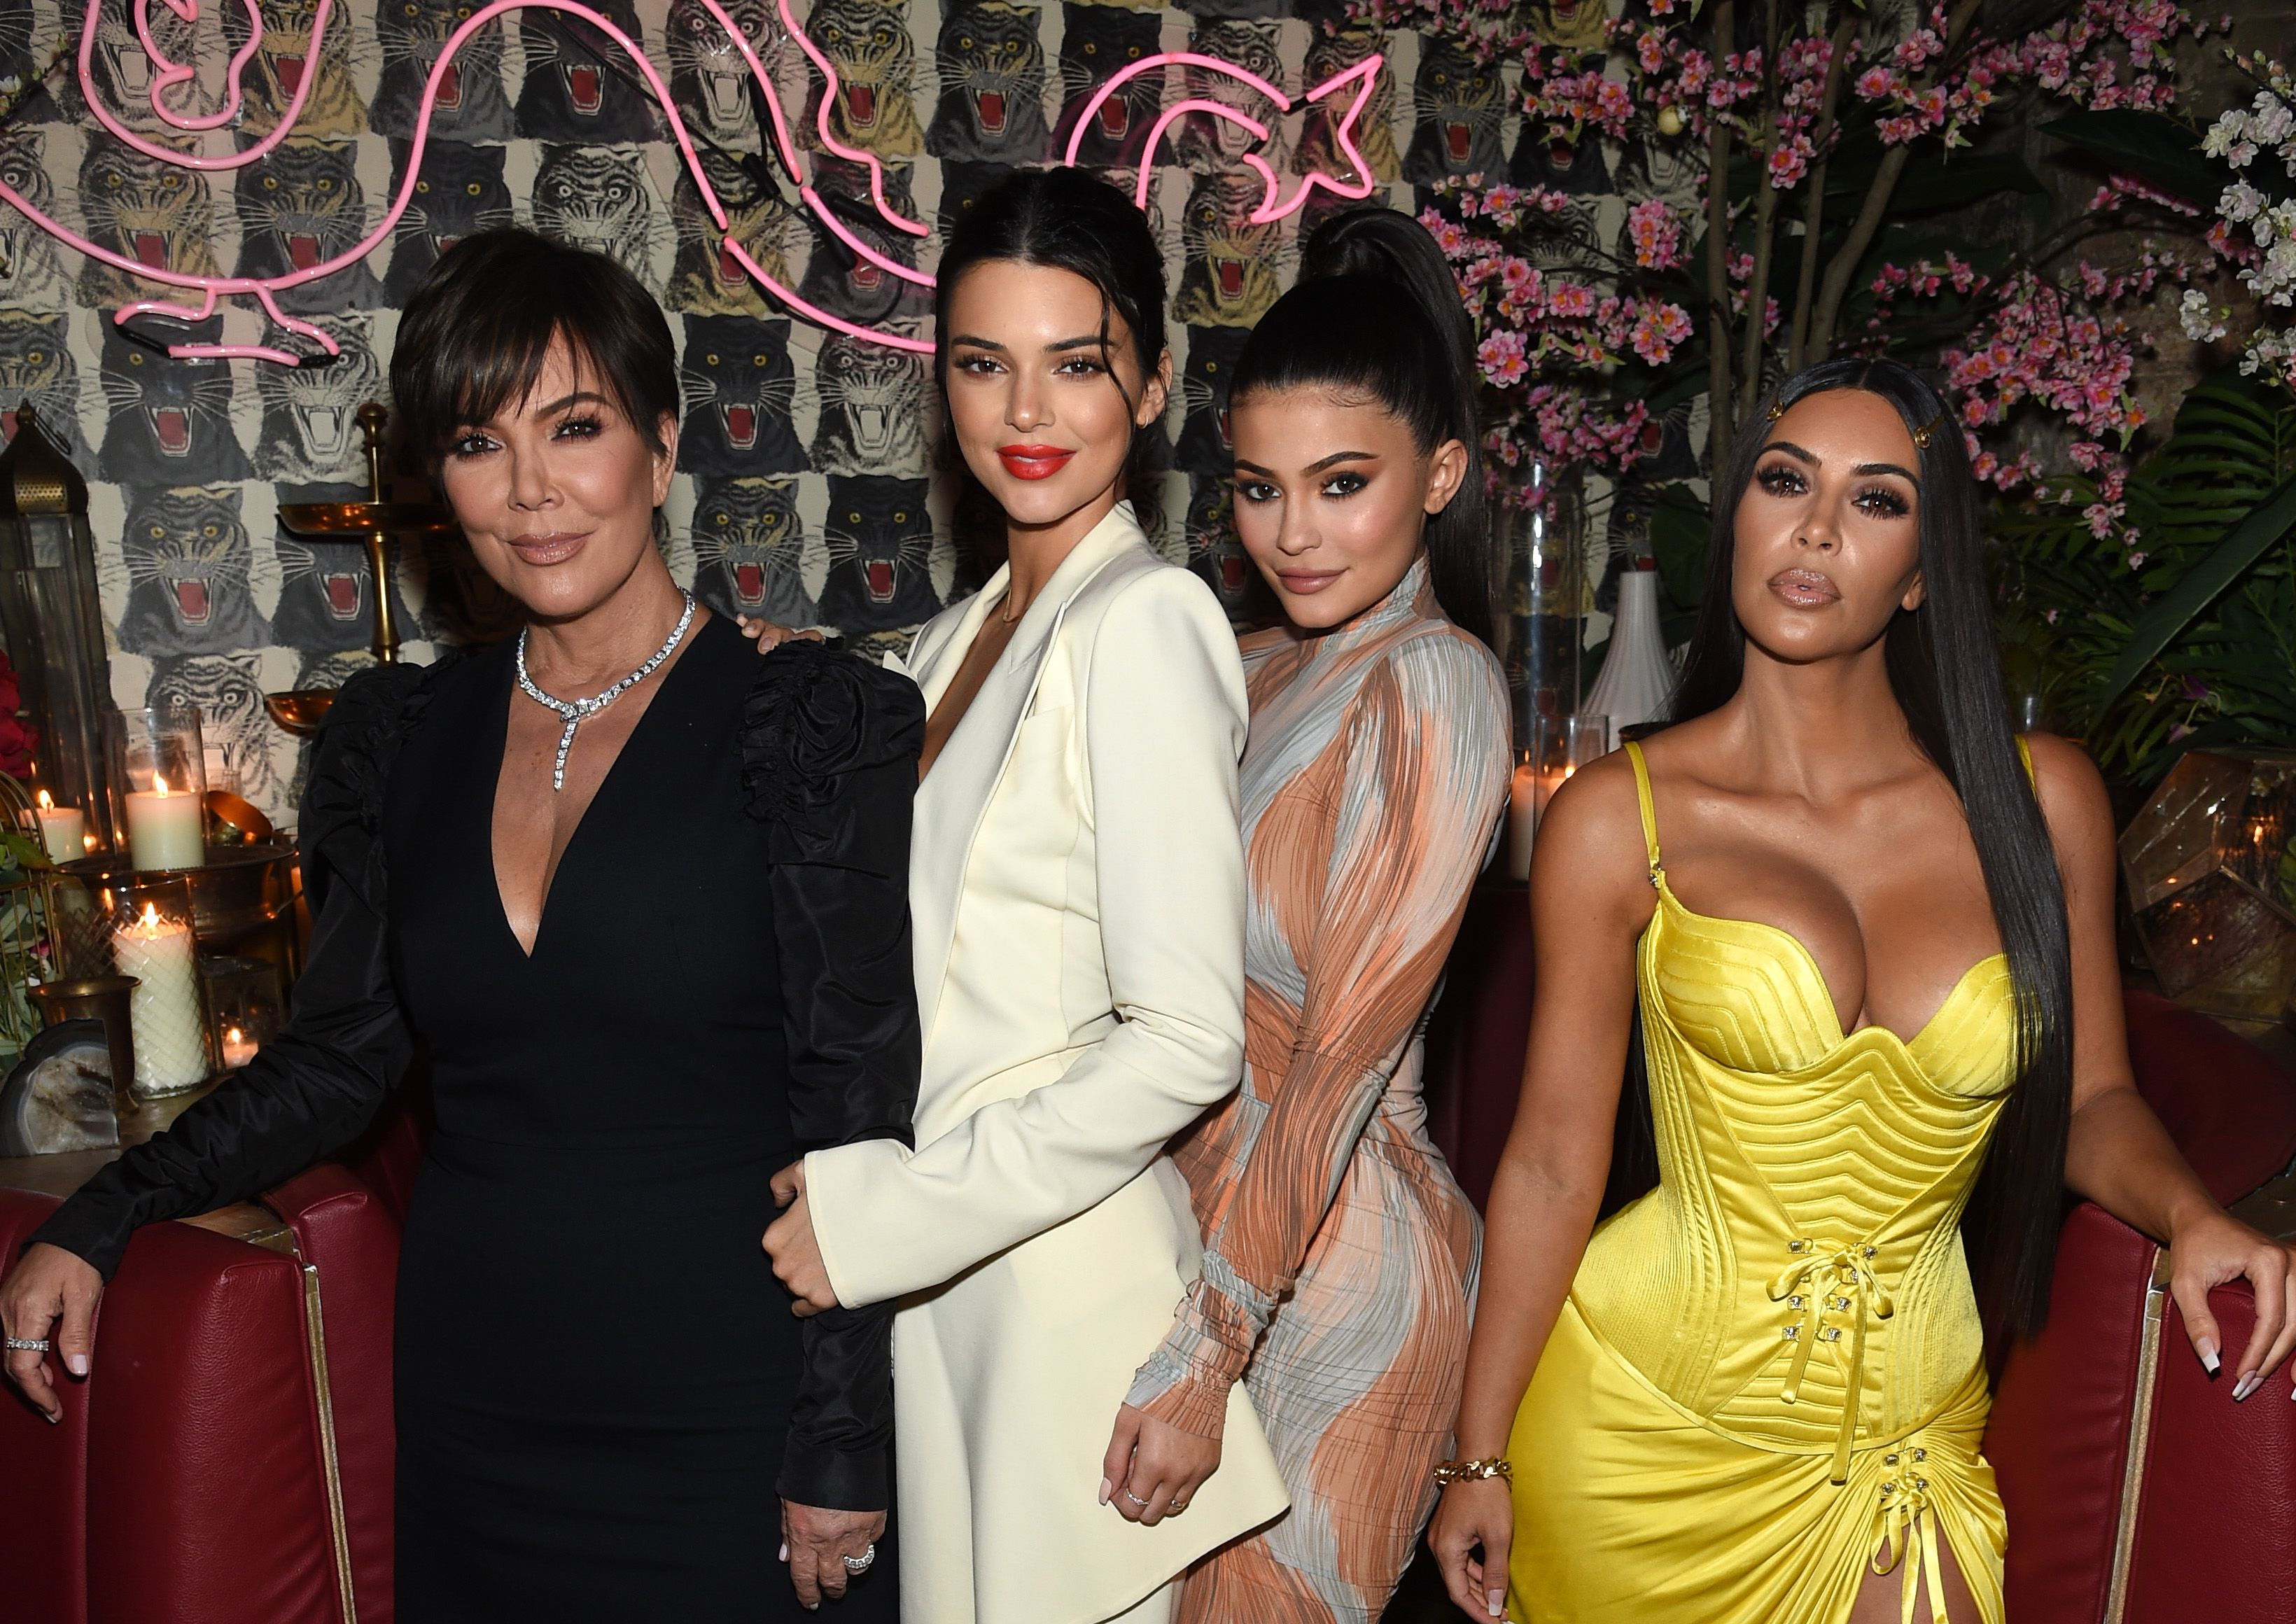 Kris Jenner Just Predicted Which Daughter Will Give Birth Next, And It's Not Who You Think